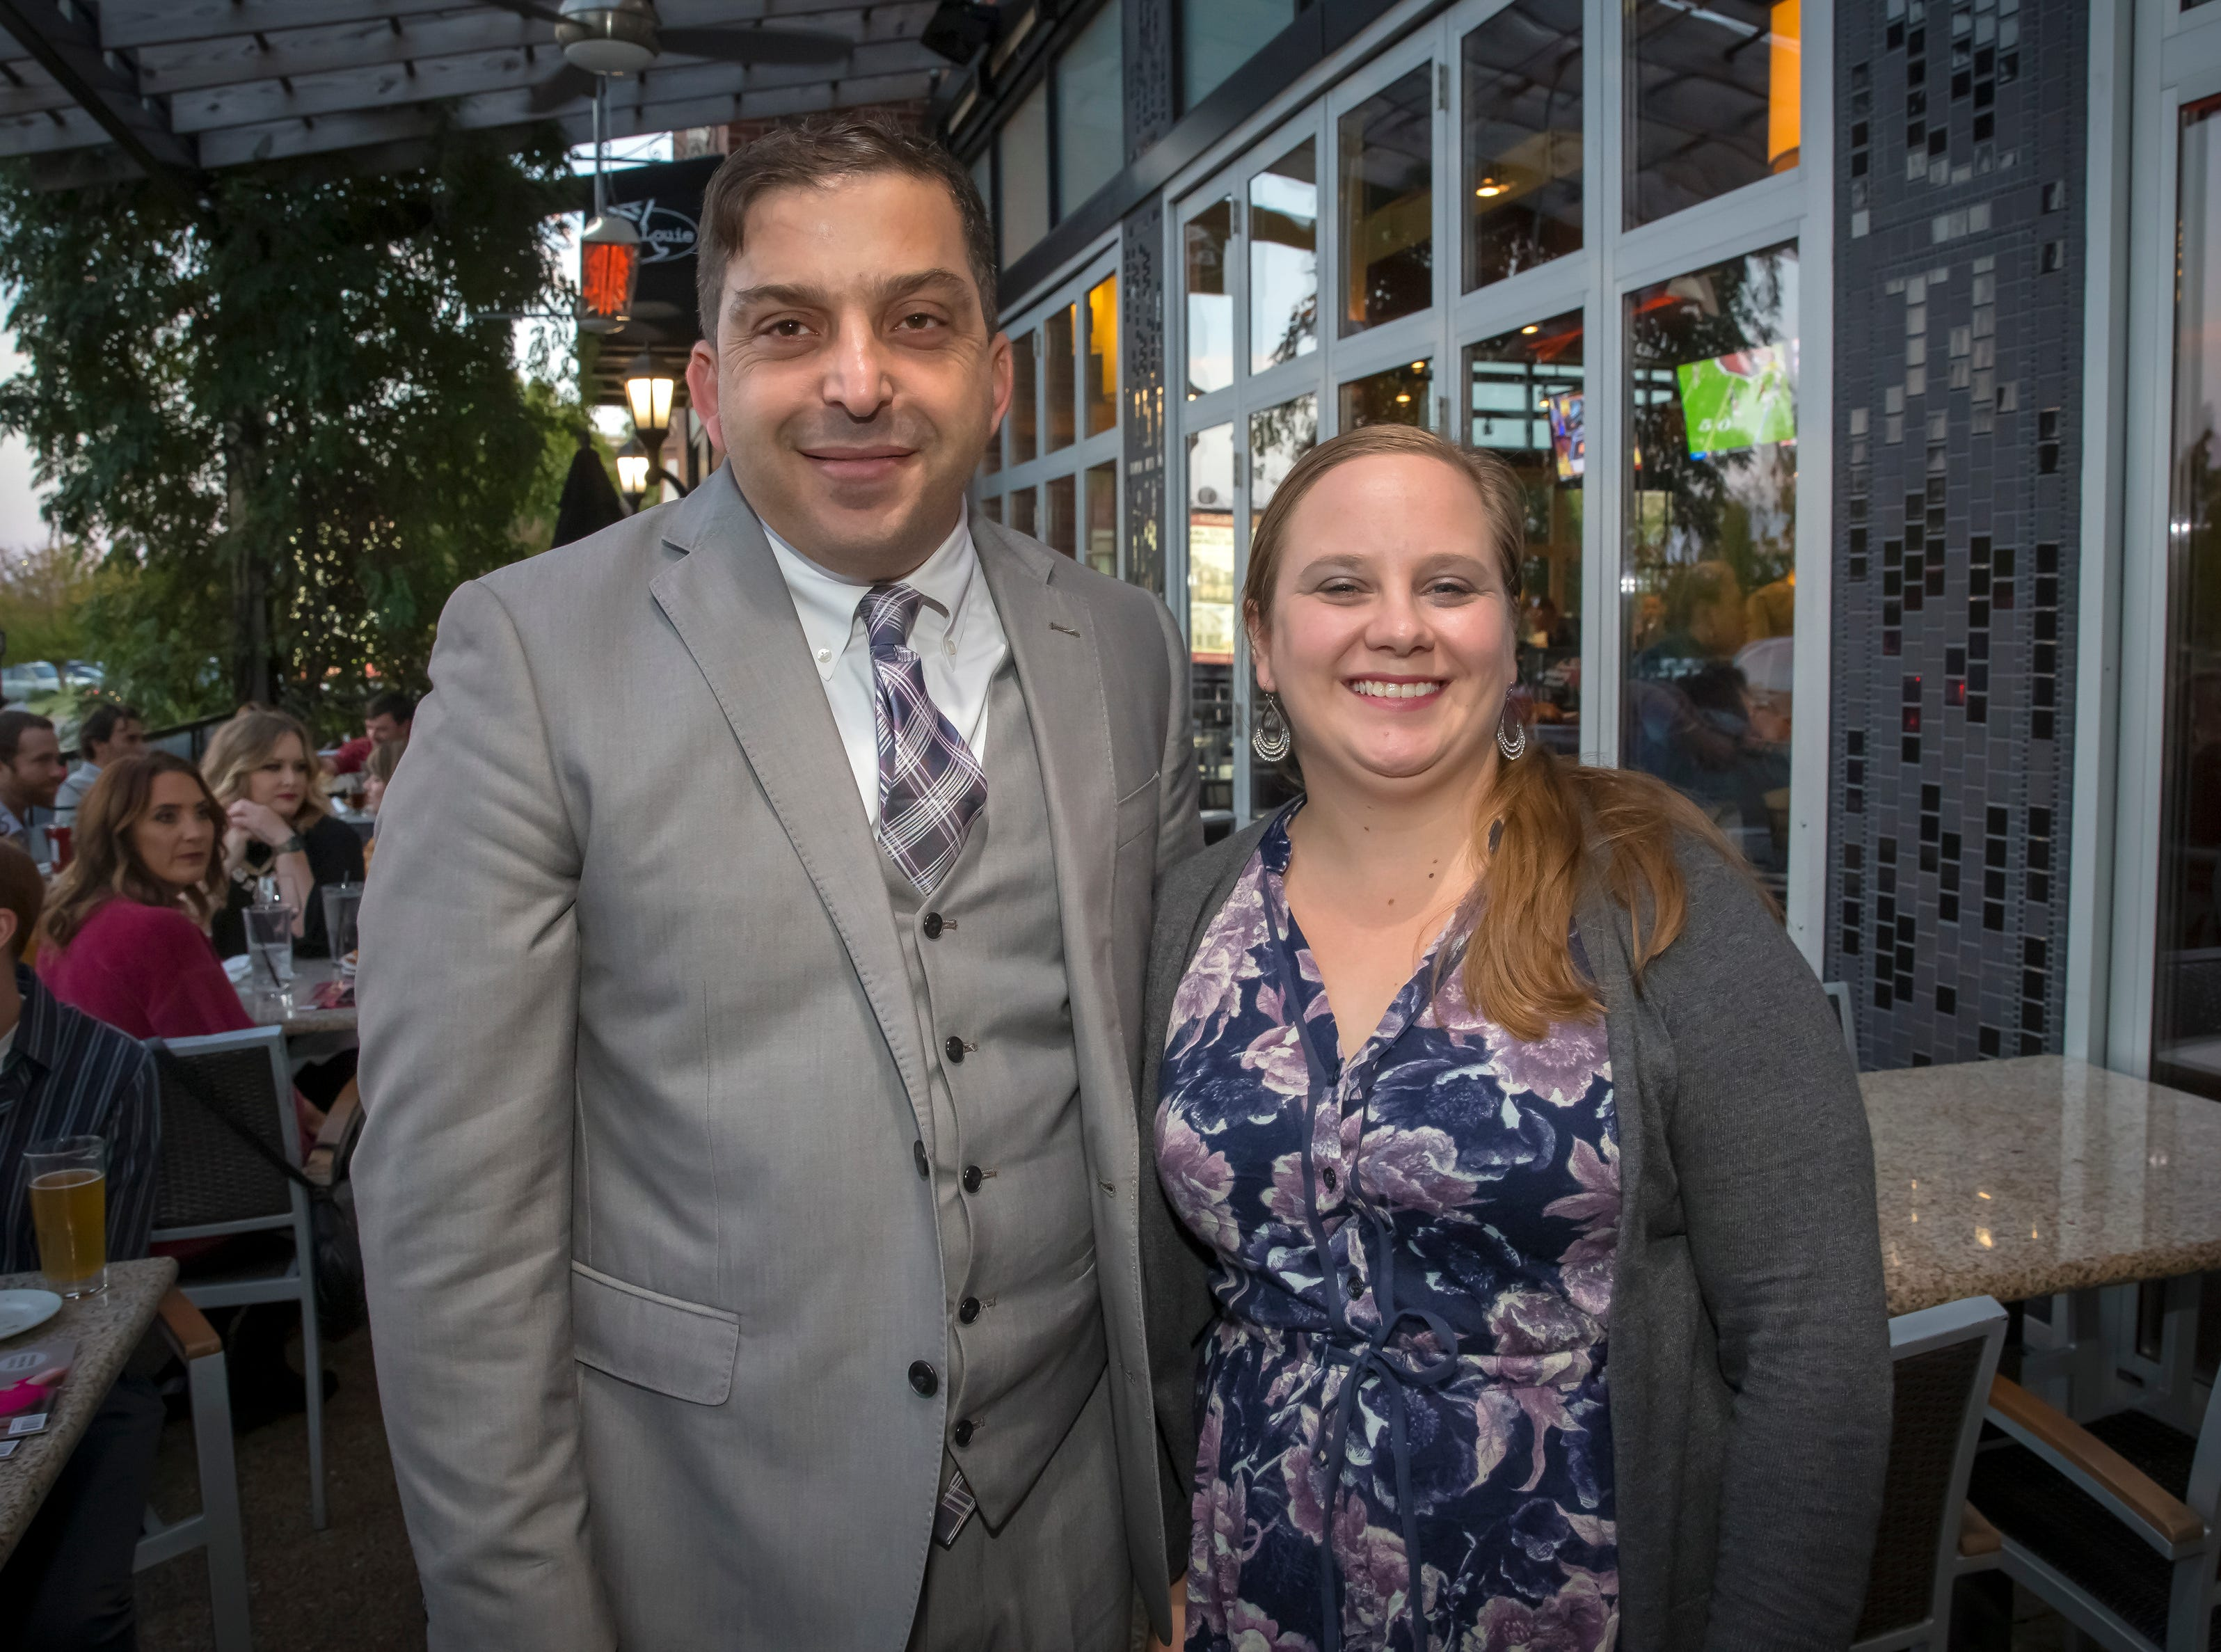 Abdou Kattih and Sarah Clark at the Murfreesboro Magazine Most Beautiful People event held at Bar Louie.photo by Jim Davis/for the DNJ